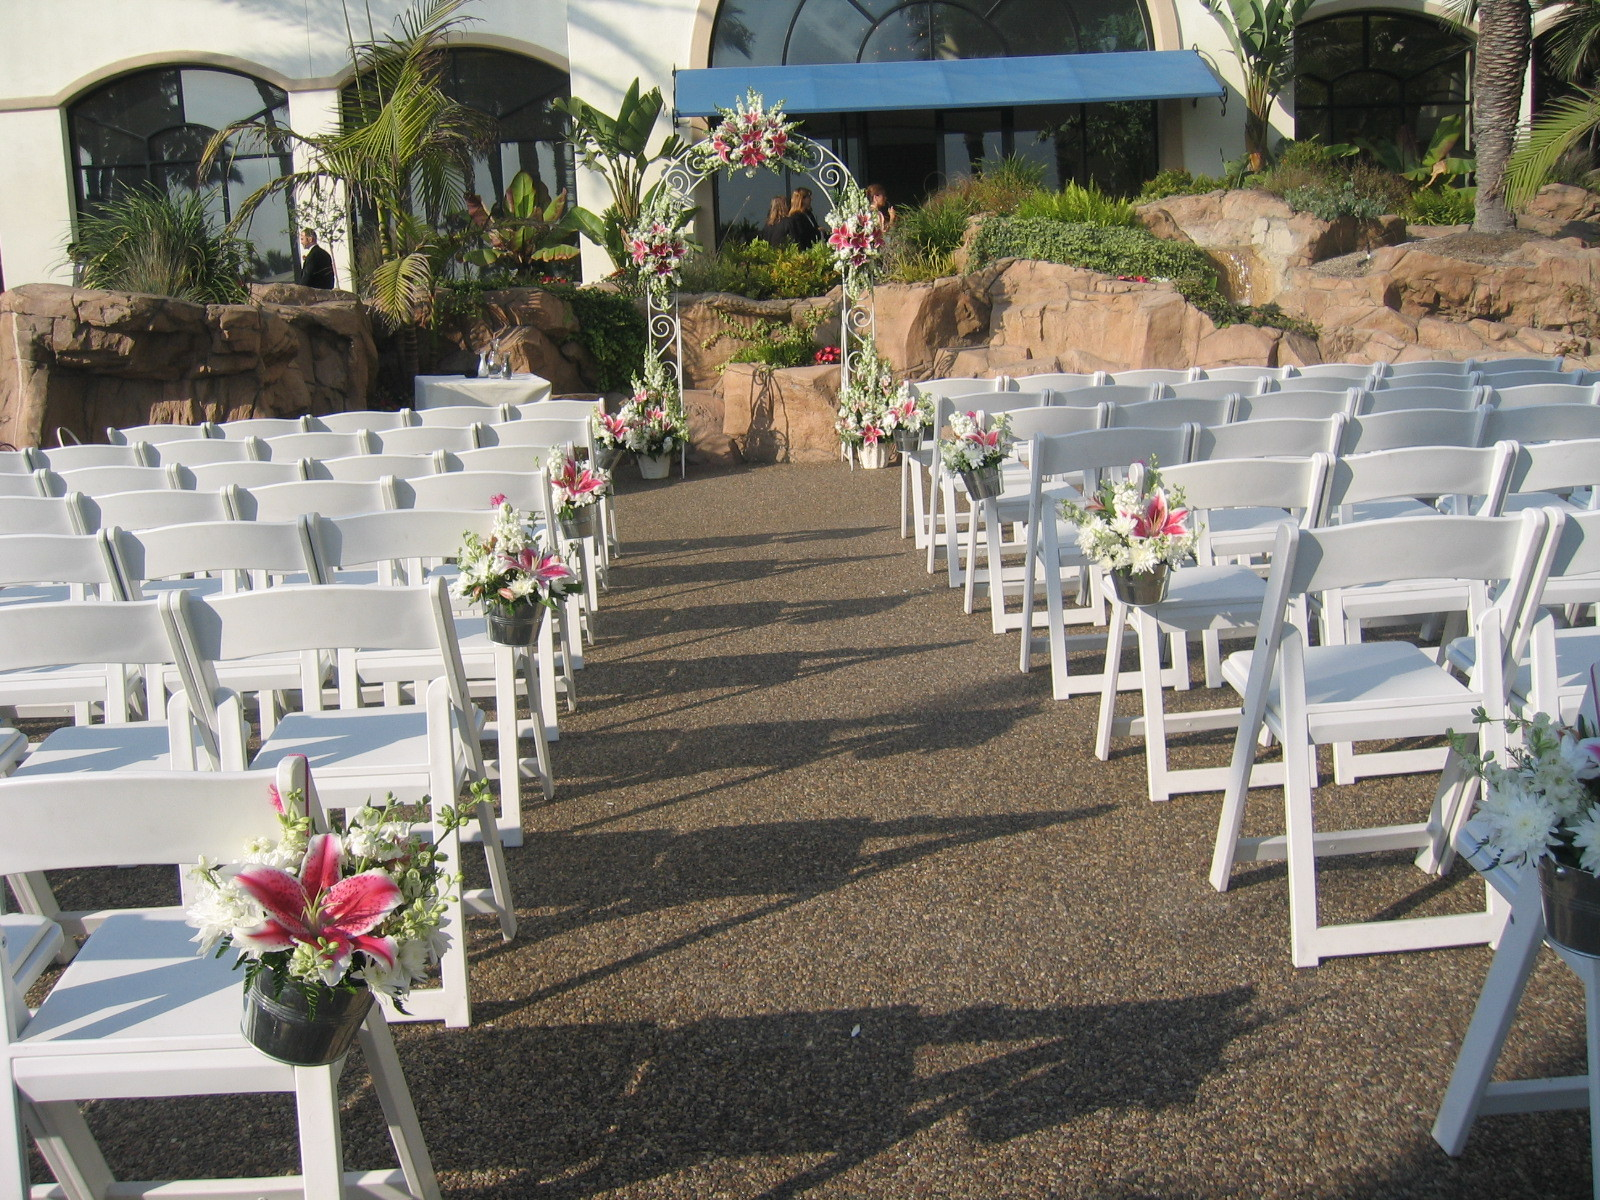 Ceremony, Flowers & Decor, white, pink, black, Ceremony Flowers, Aisle Decor, Centerpieces, Flowers, Table, Aisle, Ninfas flowers gifts, Flowerscocktail